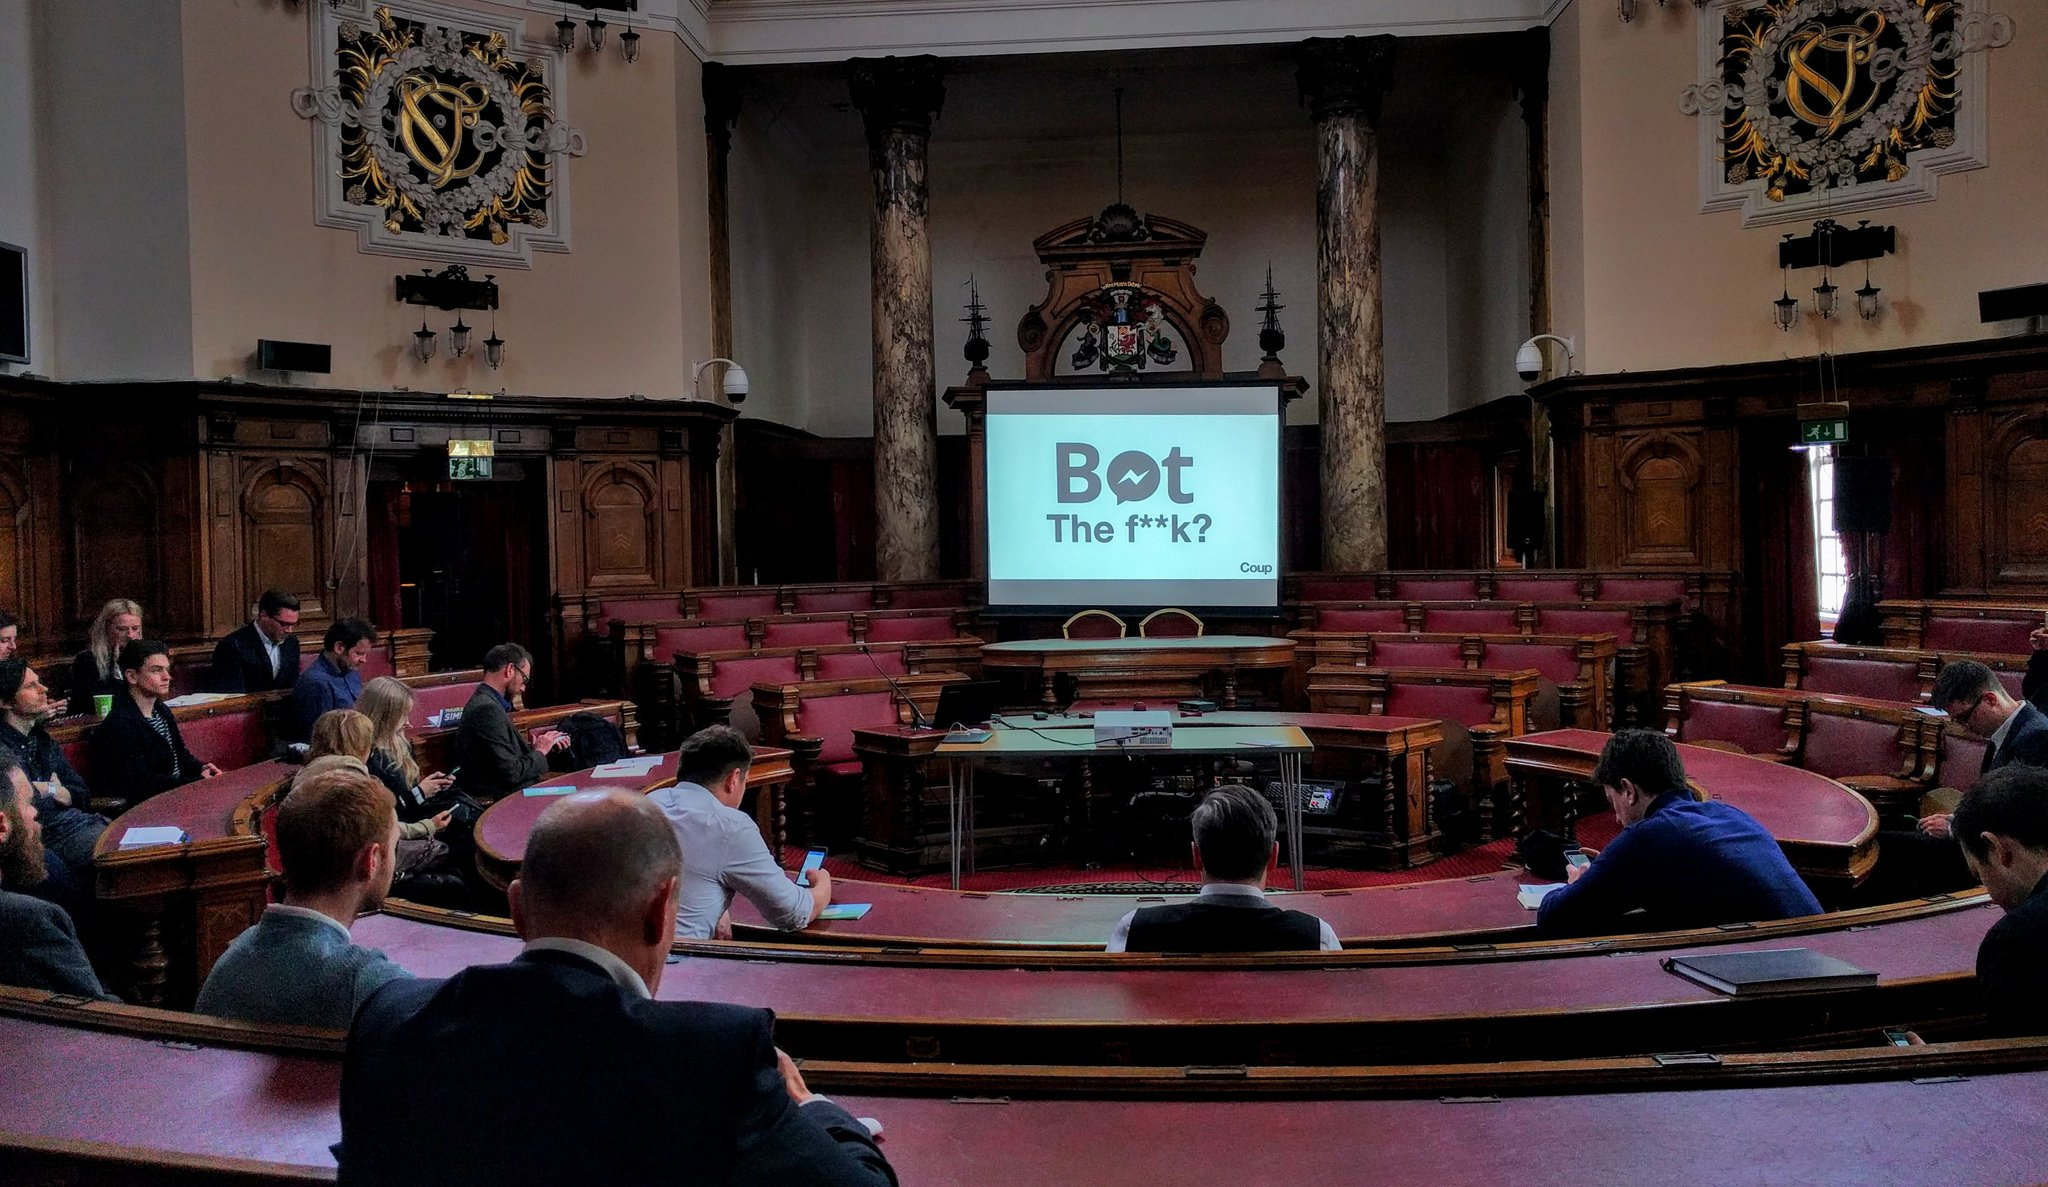 Council meeting? No! A tech talk on #chatbots, of course, from #oiconf organiser @coupmedia_paul at Cardiff city hall. https://t.co/dhDJF1PrH4